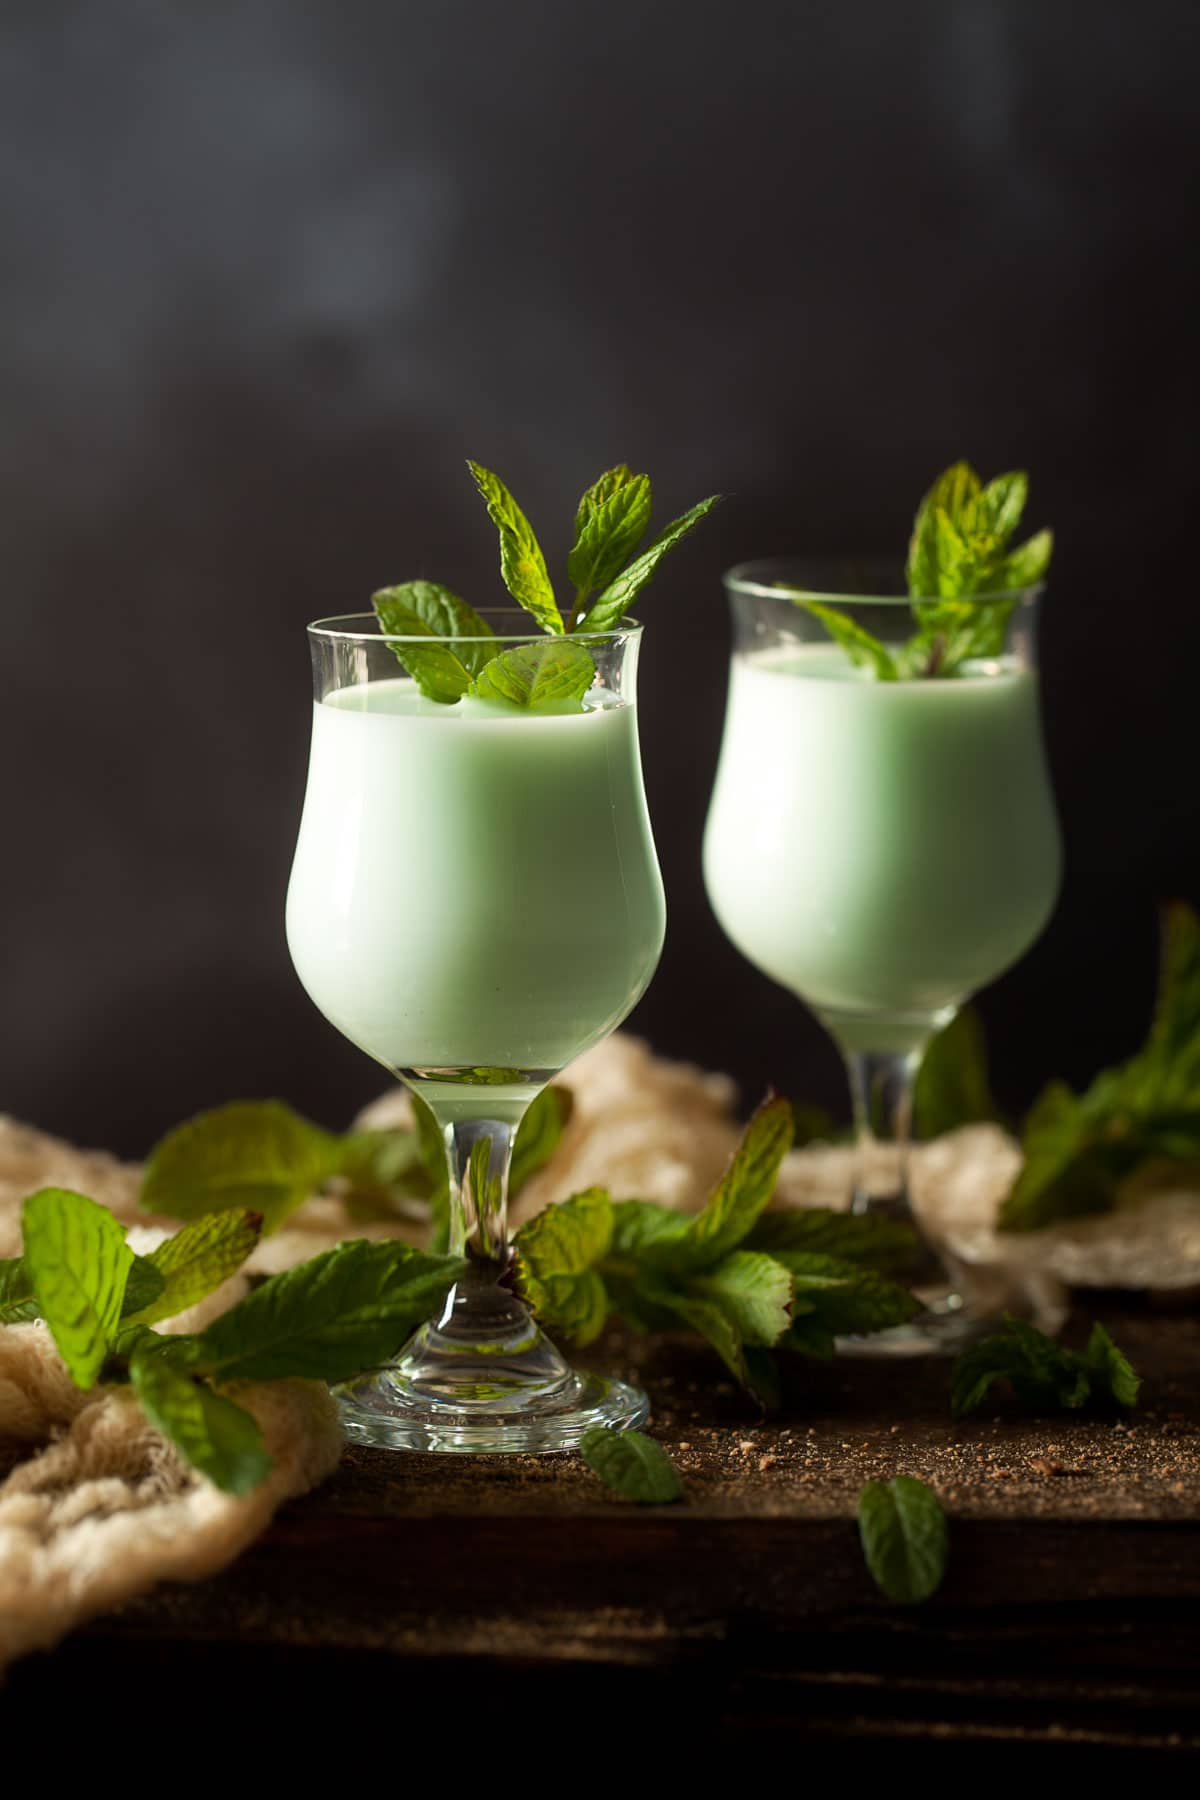 Mint gin Alexander - a pale green creamy cocktail served in 2 vintage glasses and decorated with mint leaves